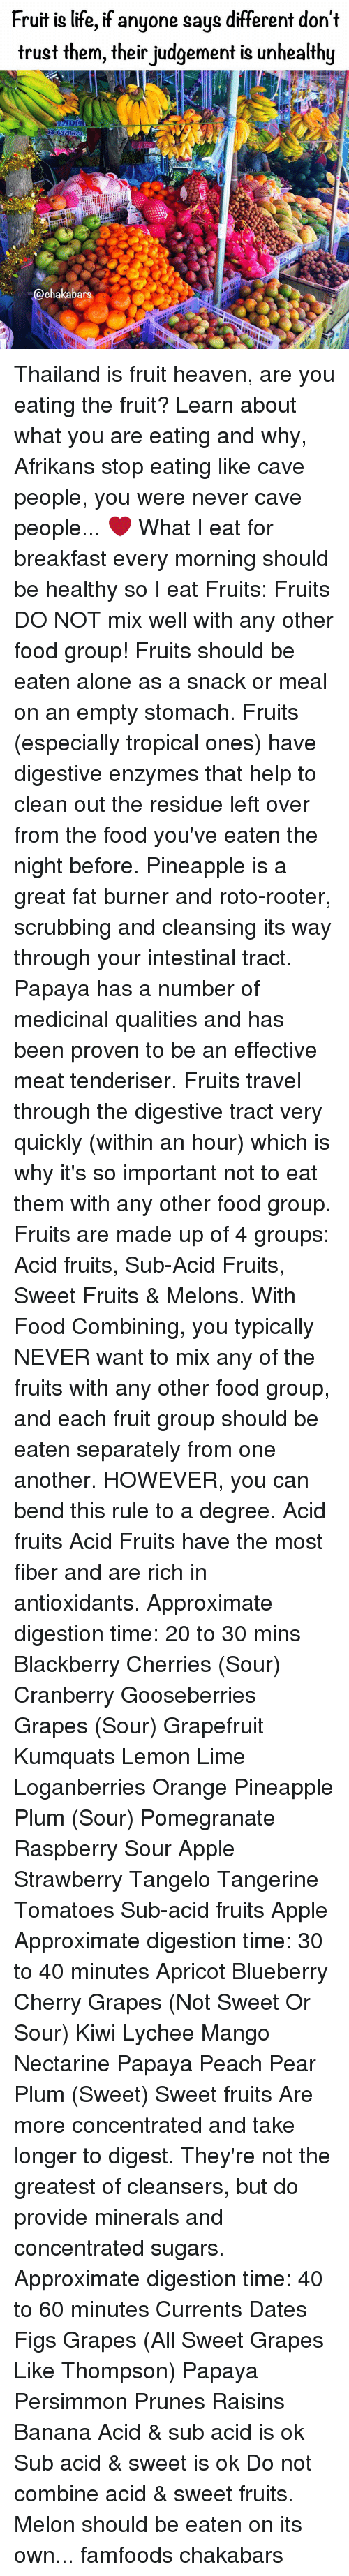 Apple, BlackBerry, and Food: Fruit is life, if anyone says different don't  trust them, their judgement is unhealthy  38-6870879.  @chakabars Thailand is fruit heaven, are you eating the fruit? Learn about what you are eating and why, Afrikans stop eating like cave people, you were never cave people... ❤️ What I eat for breakfast every morning should be healthy so I eat Fruits: Fruits DO NOT mix well with any other food group! Fruits should be eaten alone as a snack or meal on an empty stomach. Fruits (especially tropical ones) have digestive enzymes that help to clean out the residue left over from the food you've eaten the night before. Pineapple is a great fat burner and roto-rooter, scrubbing and cleansing its way through your intestinal tract. Papaya has a number of medicinal qualities and has been proven to be an effective meat tenderiser. Fruits travel through the digestive tract very quickly (within an hour) which is why it's so important not to eat them with any other food group. Fruits are made up of 4 groups: Acid fruits, Sub-Acid Fruits, Sweet Fruits & Melons. With Food Combining, you typically NEVER want to mix any of the fruits with any other food group, and each fruit group should be eaten separately from one another. HOWEVER, you can bend this rule to a degree. Acid fruits Acid Fruits have the most fiber and are rich in antioxidants. Approximate digestion time: 20 to 30 mins Blackberry Cherries (Sour) Cranberry Gooseberries Grapes (Sour) Grapefruit Kumquats Lemon Lime Loganberries Orange Pineapple Plum (Sour) Pomegranate Raspberry Sour Apple Strawberry Tangelo Tangerine Tomatoes Sub-acid fruits Apple Approximate digestion time: 30 to 40 minutes Apricot Blueberry Cherry Grapes (Not Sweet Or Sour) Kiwi Lychee Mango Nectarine Papaya Peach Pear Plum (Sweet) Sweet fruits Are more concentrated and take longer to digest. They're not the greatest of cleansers, but do provide minerals and concentrated sugars. Approximate digestion time: 40 to 60 minutes Curre